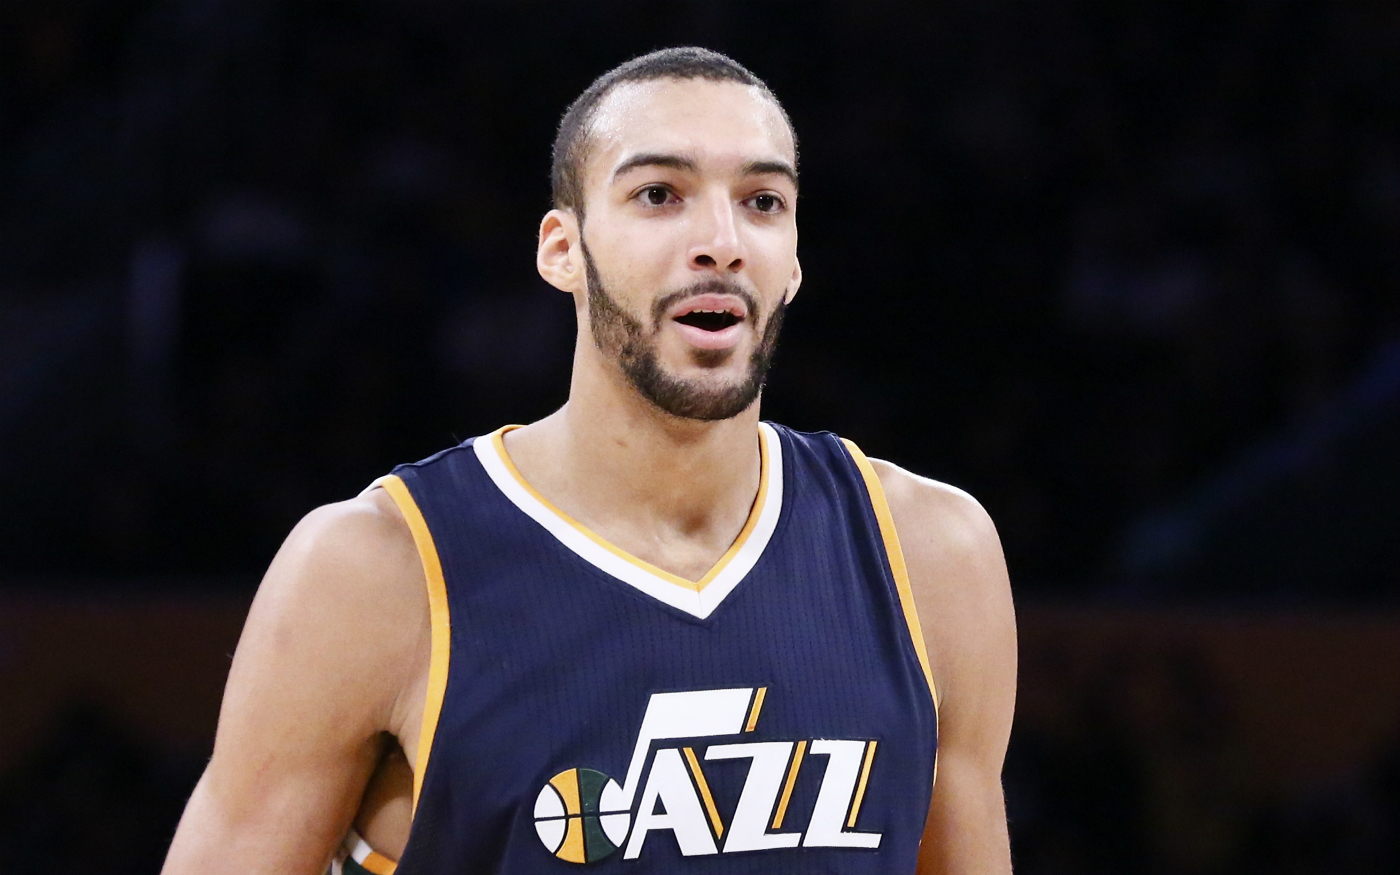 Rudy Gobert sort le match de sa vie contre les New York Knicks